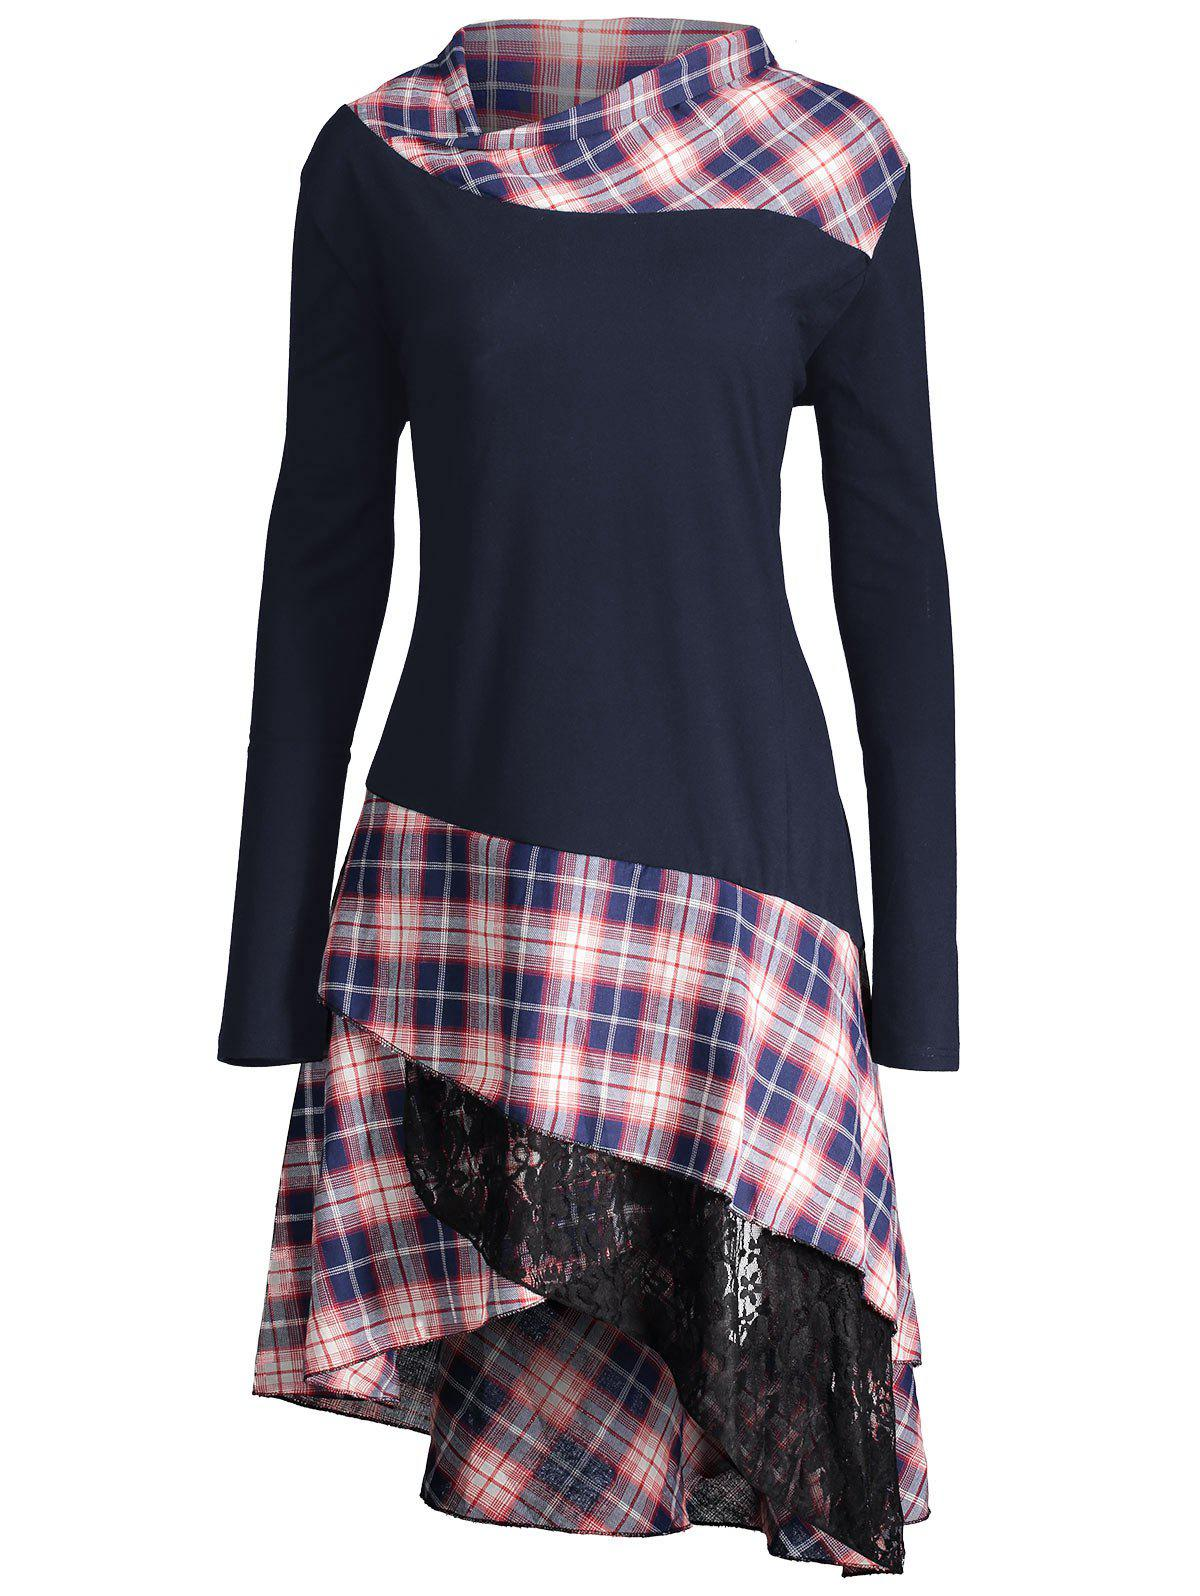 Long Plus Size Lace Plaid Panel TopWOMEN<br><br>Size: XL; Color: PURPLISH BLUE; Material: Polyester,Spandex; Shirt Length: Long; Sleeve Length: Full; Collar: Mock Neck; Style: Fashion; Season: Fall,Spring; Pattern Type: Plaid; Weight: 0.4100kg; Package Contents: 1 x Top;